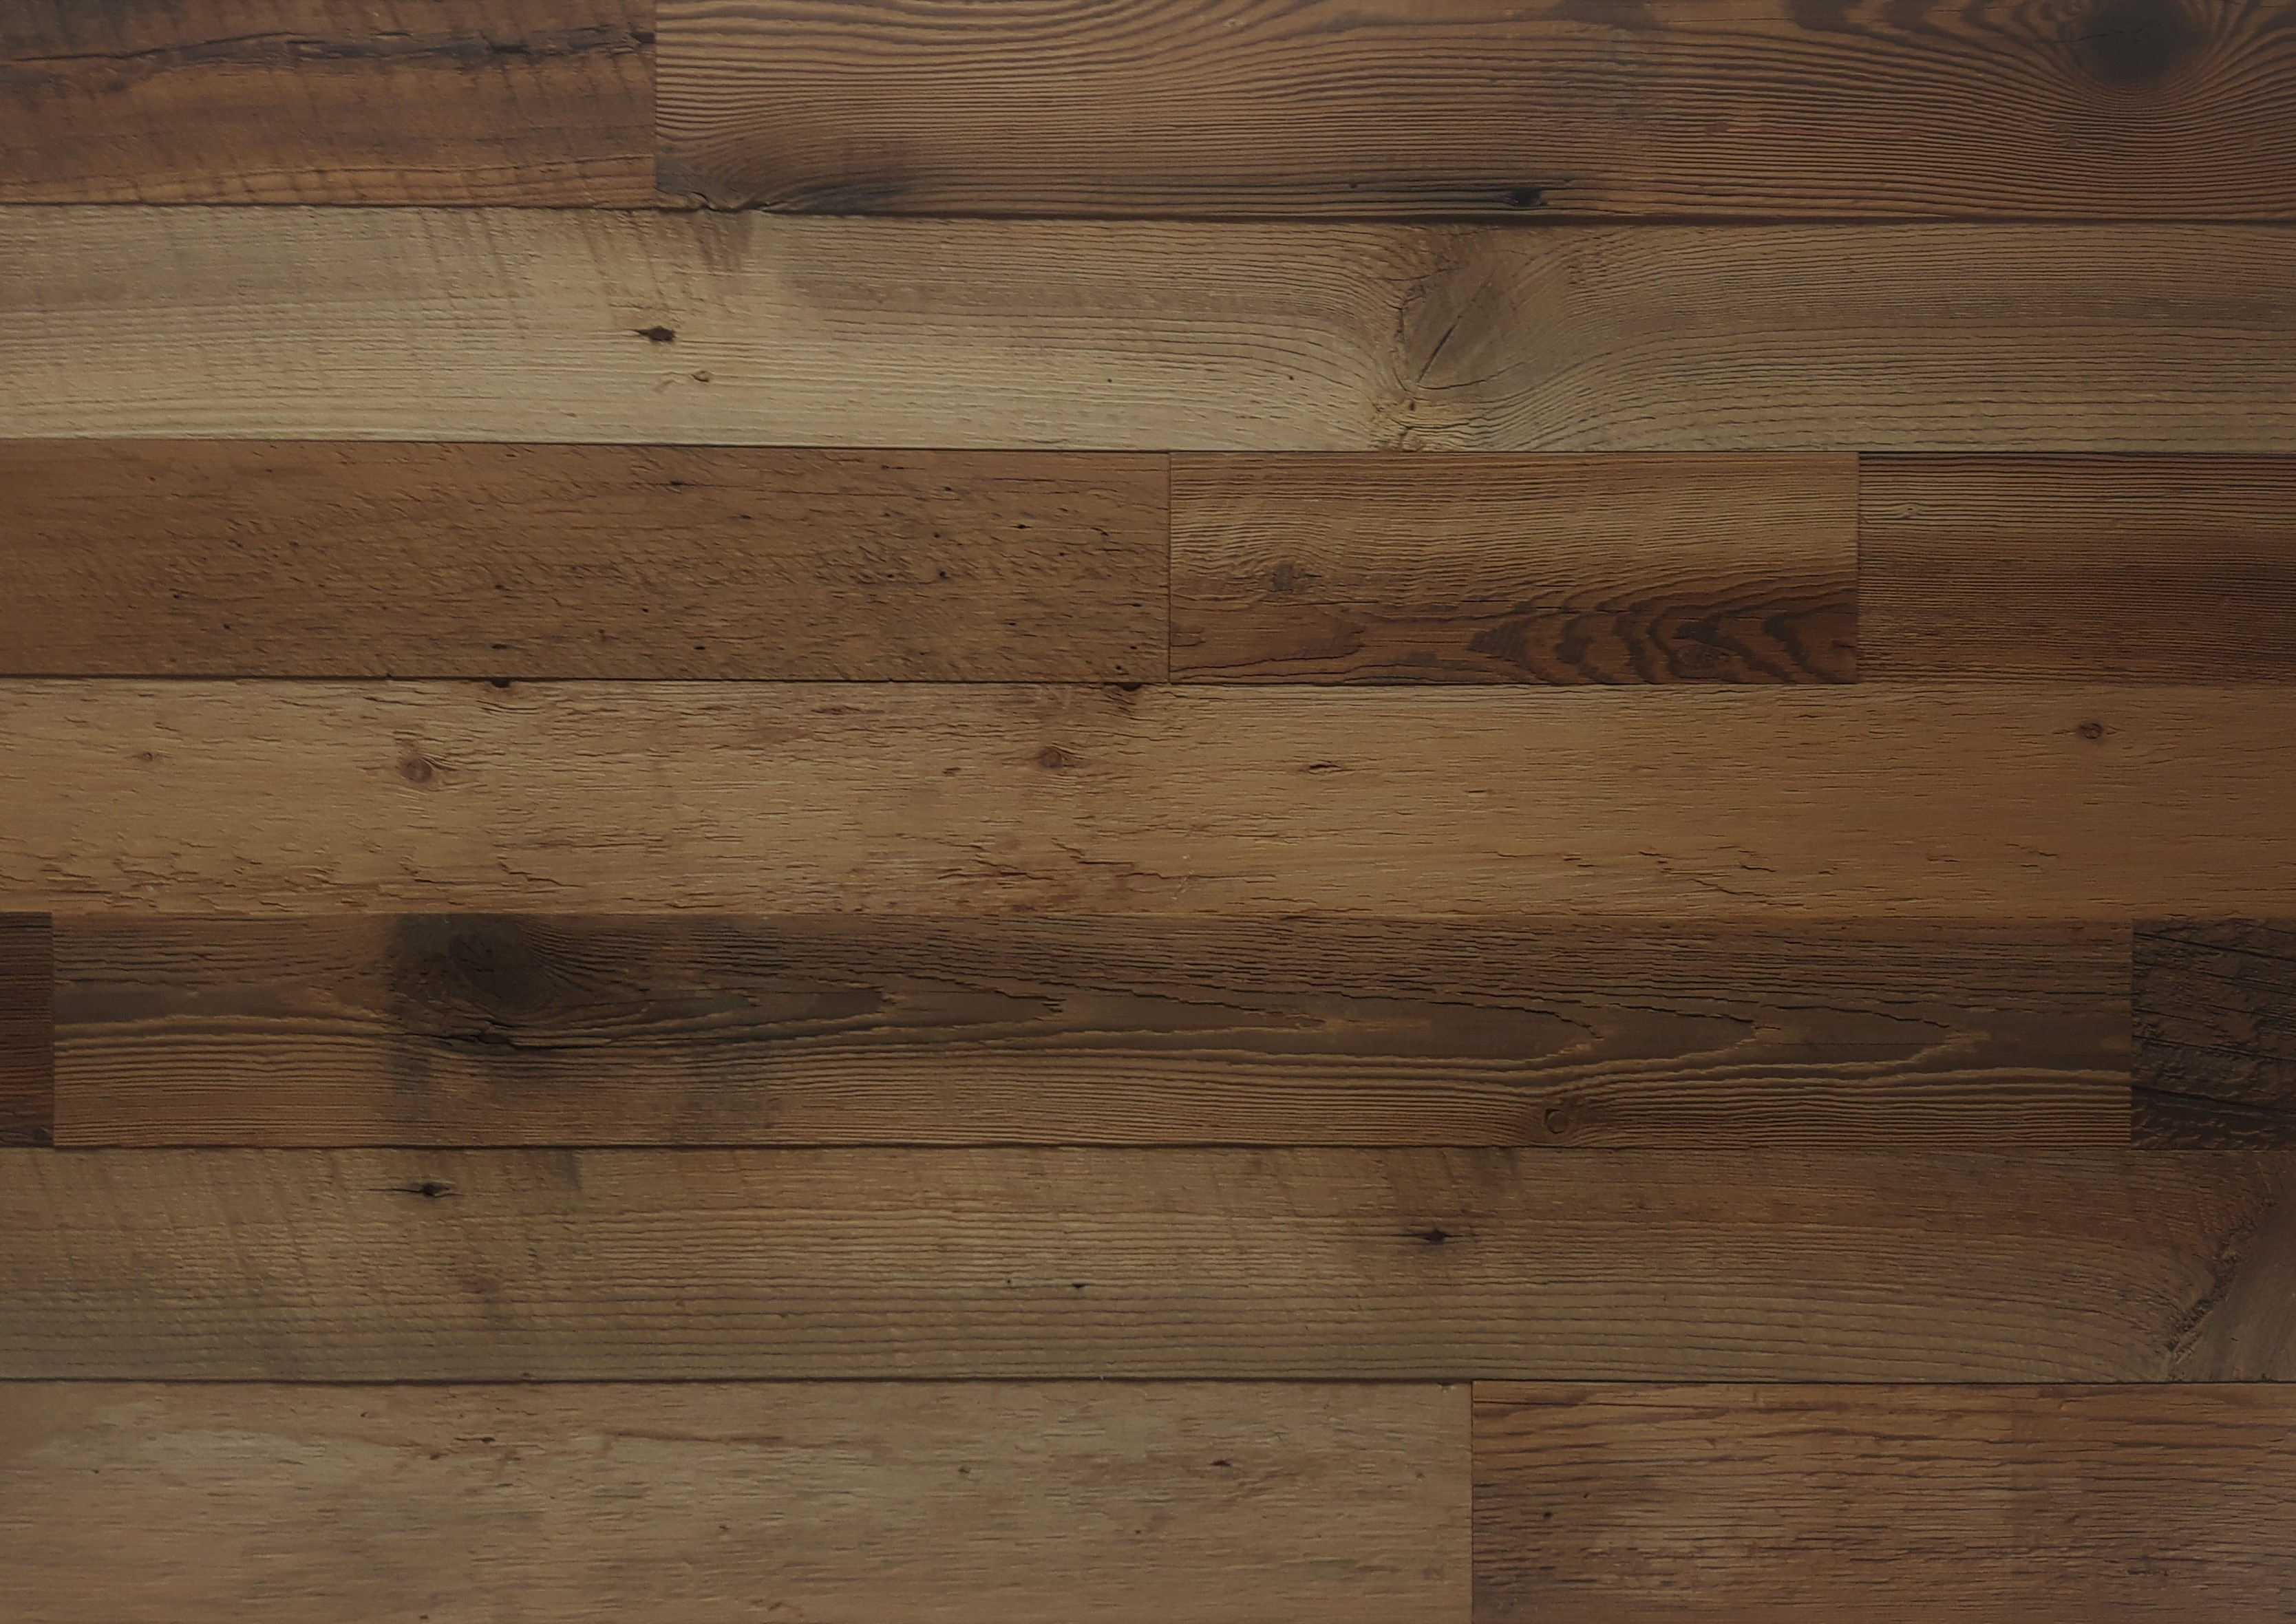 DIY Reclaimed Wood Accent Wall Brown Natural 3 5 Inch Wide - Priced Per  Square Foot